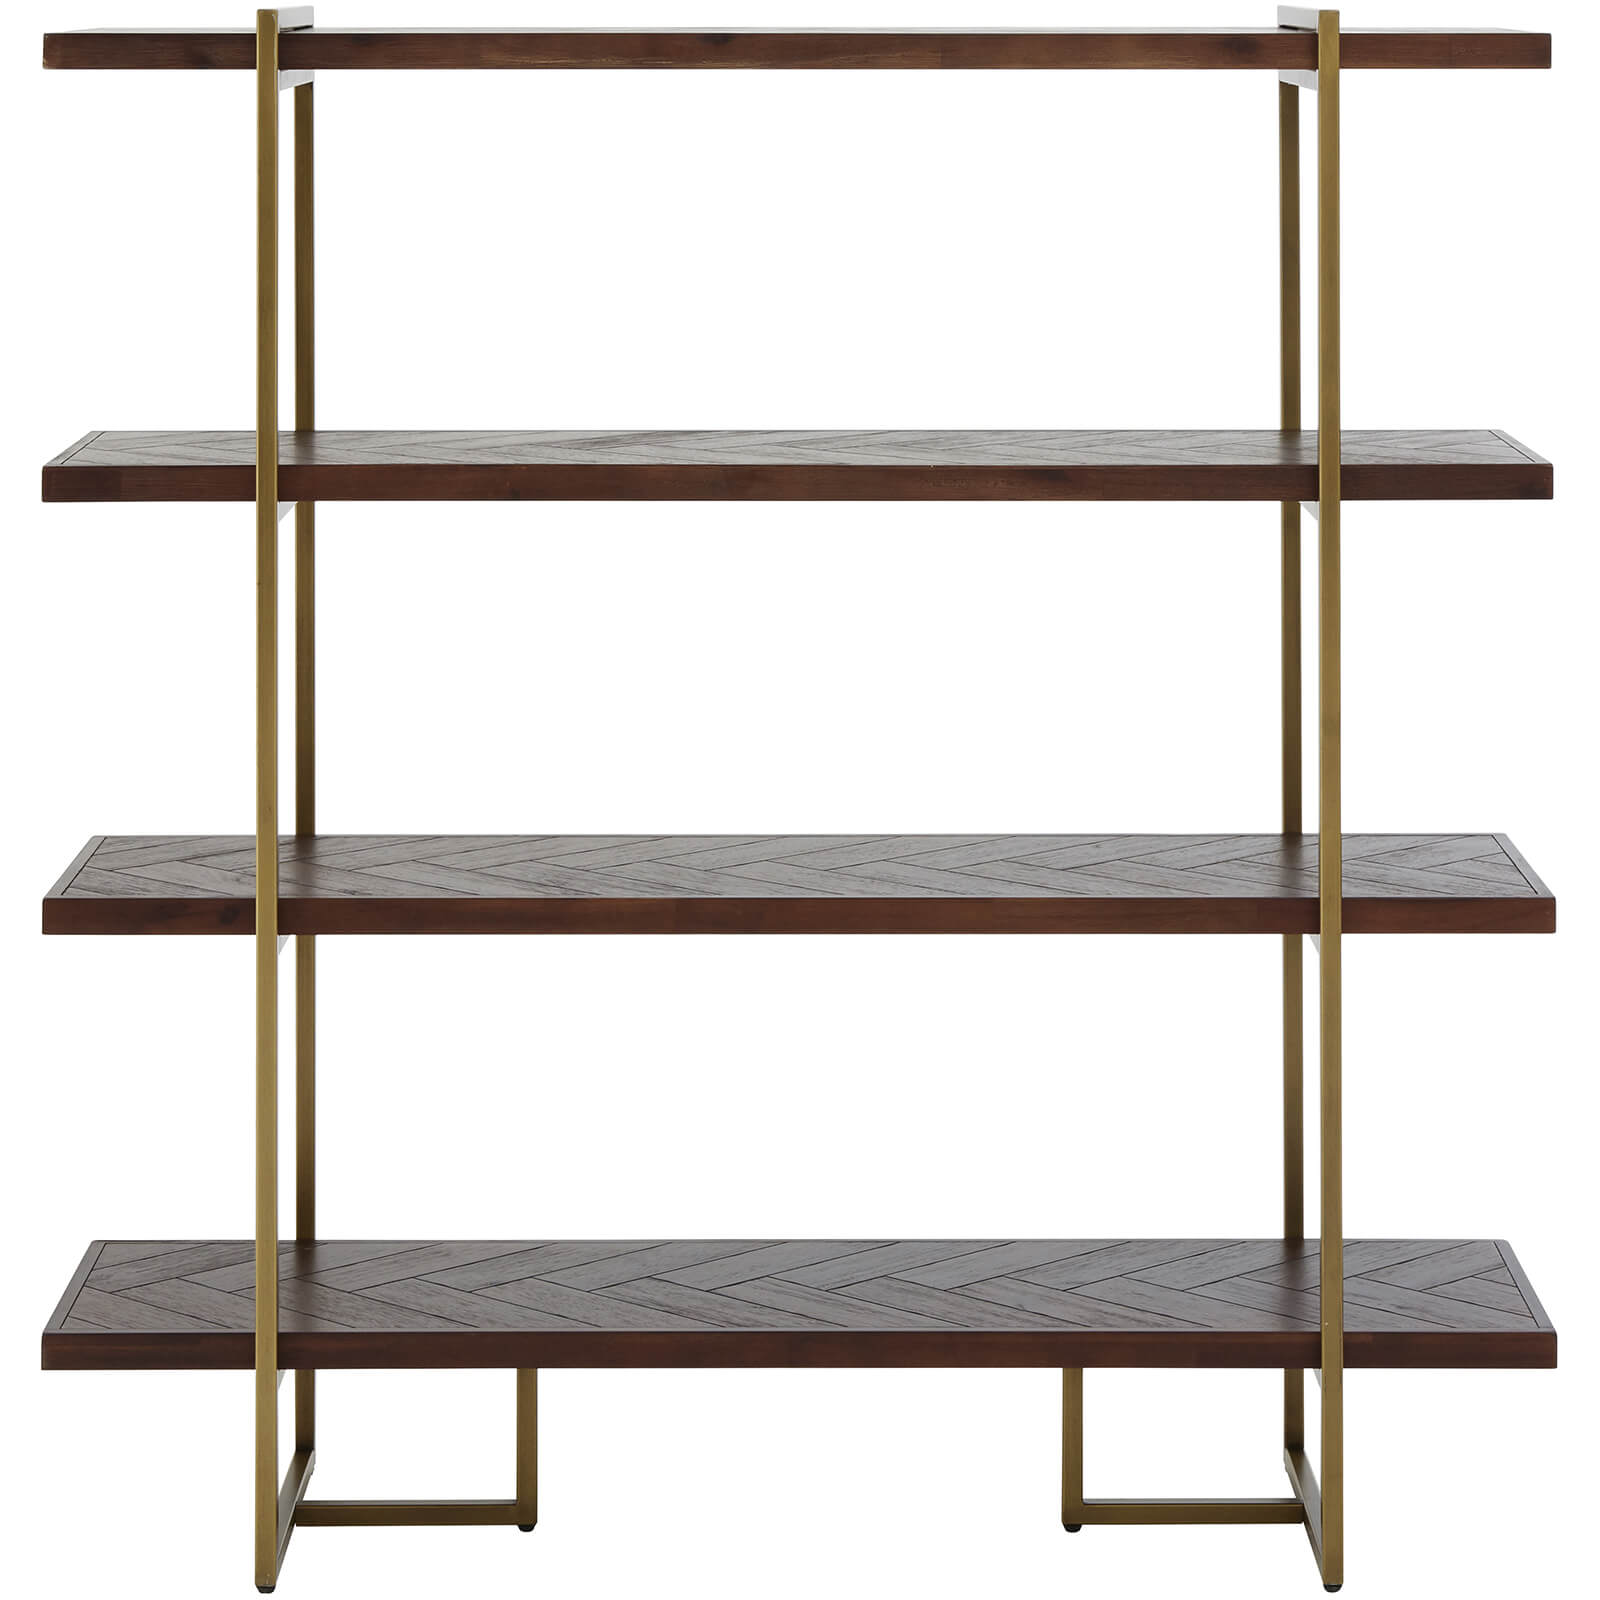 Fifty Five South Brando Bookcase - Acacia Veneer/Antique Brass